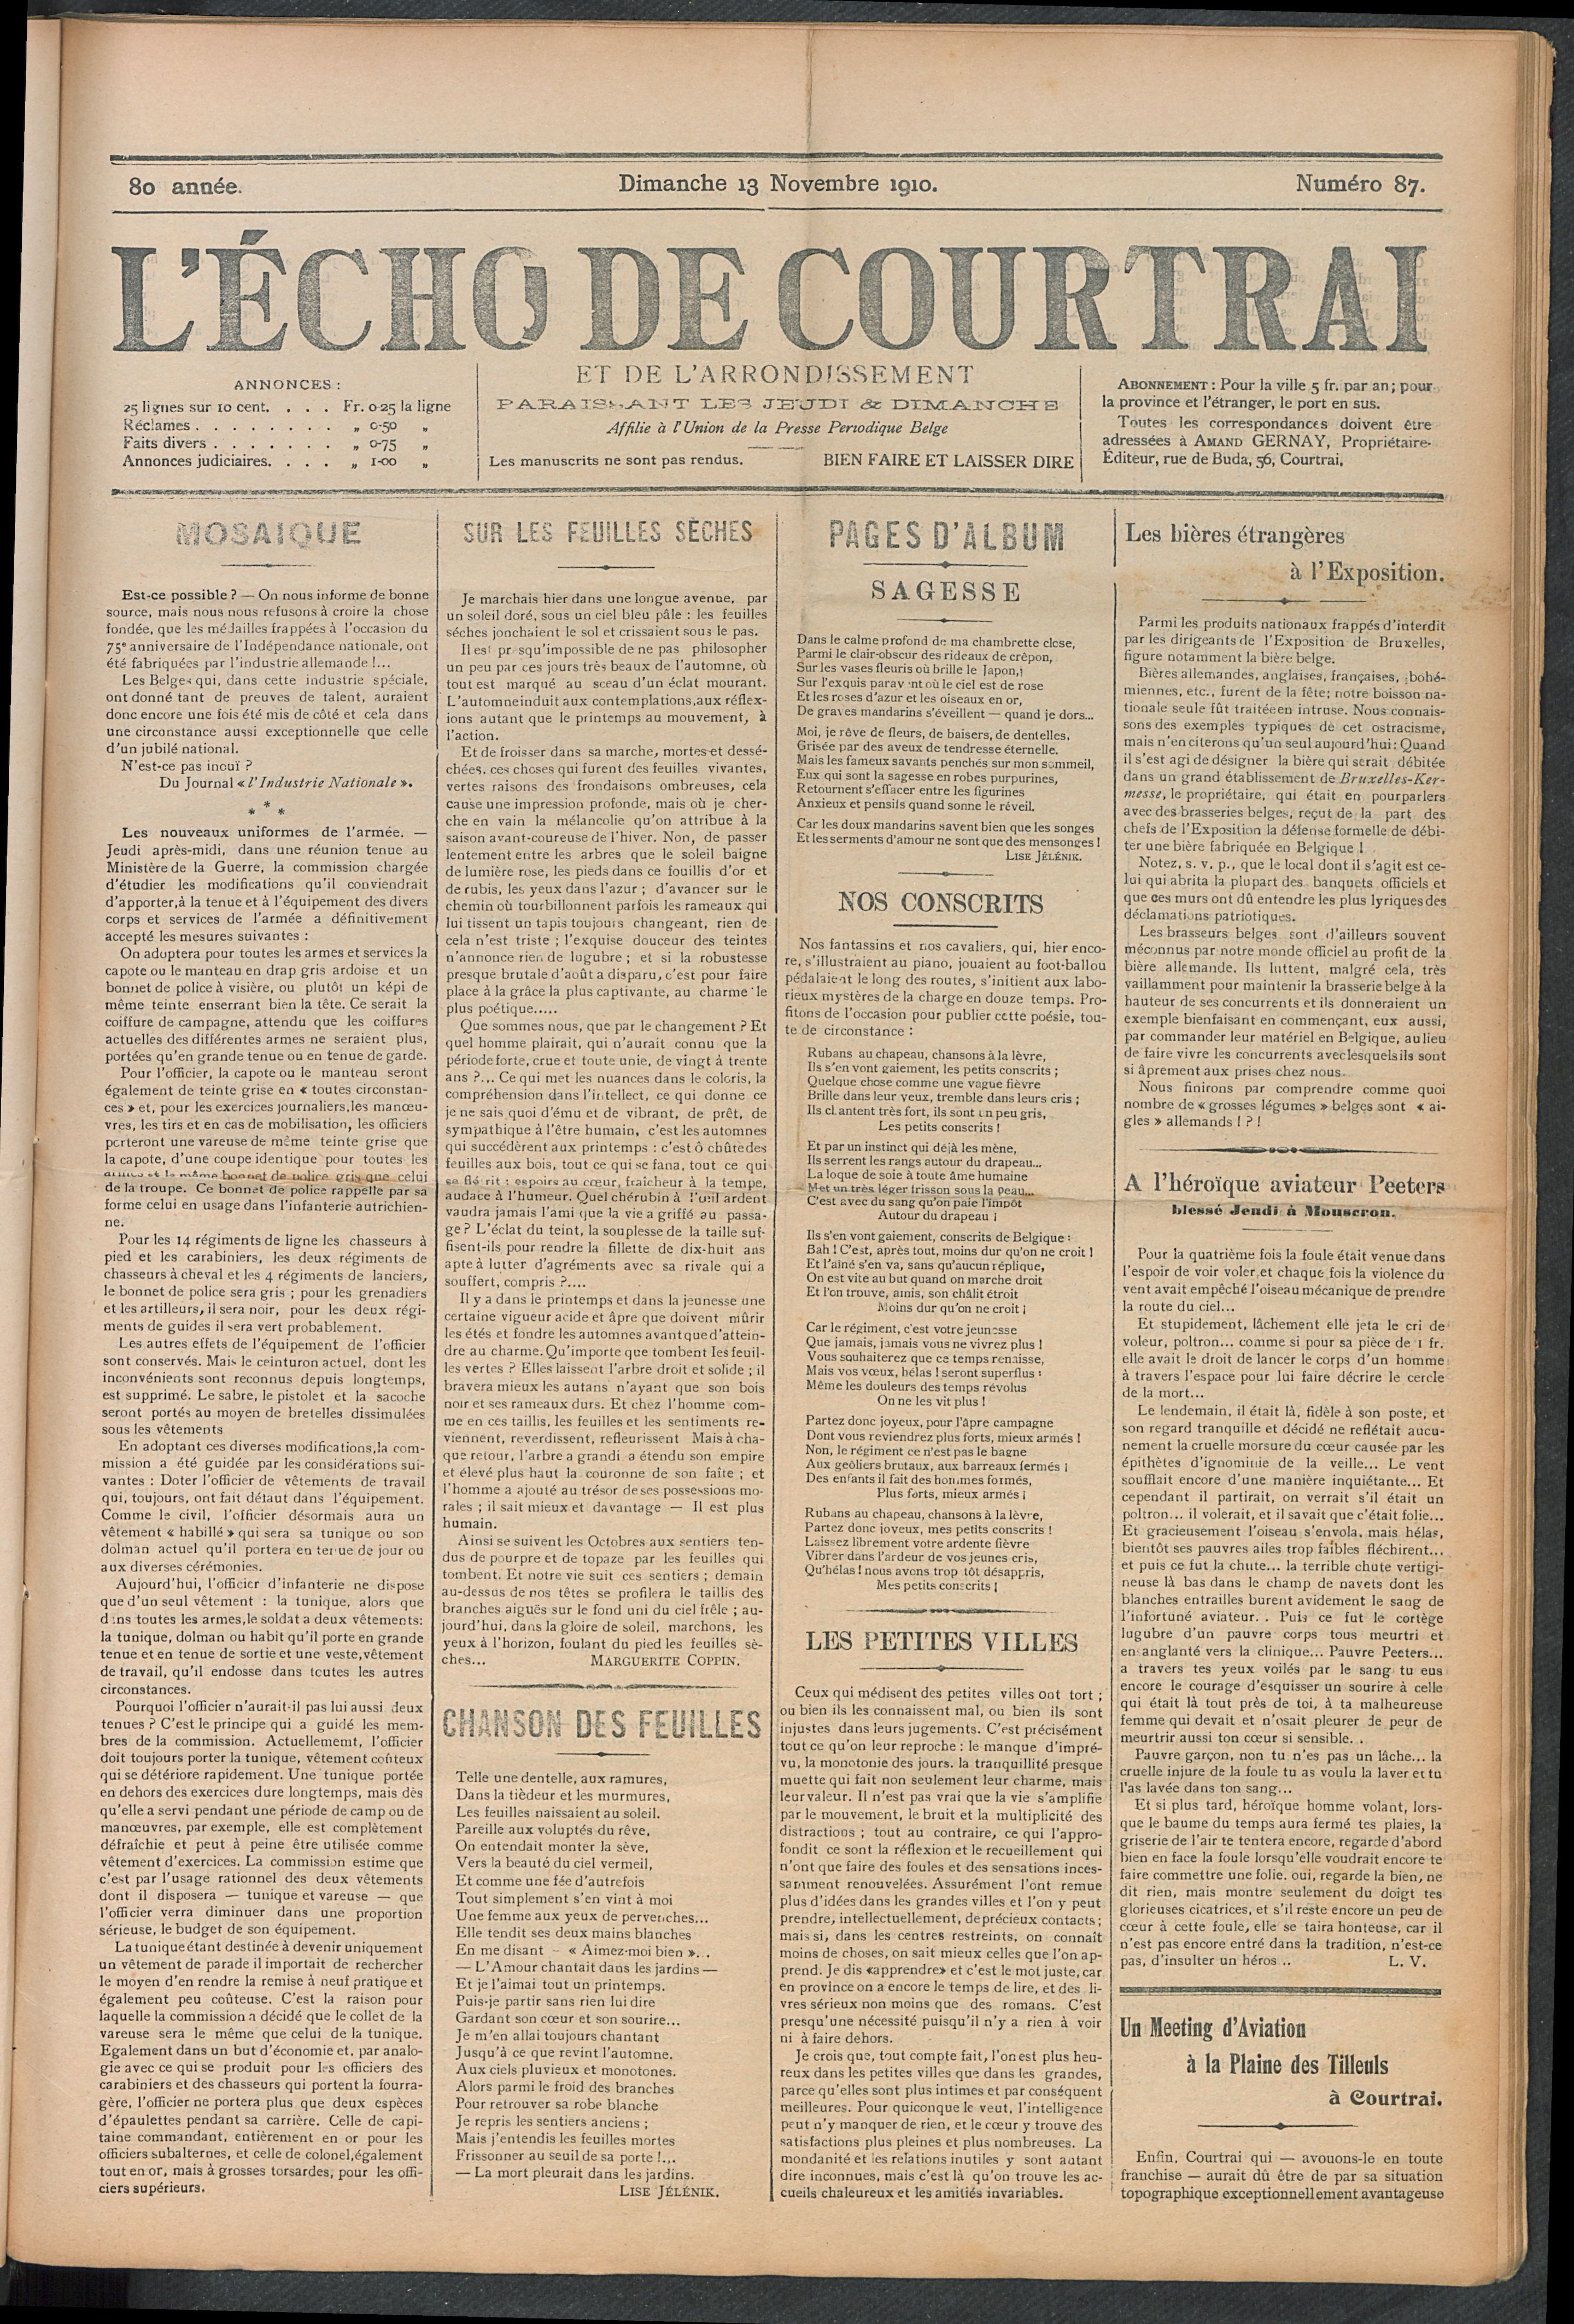 L'echo De Courtrai 1910-11-13 p1